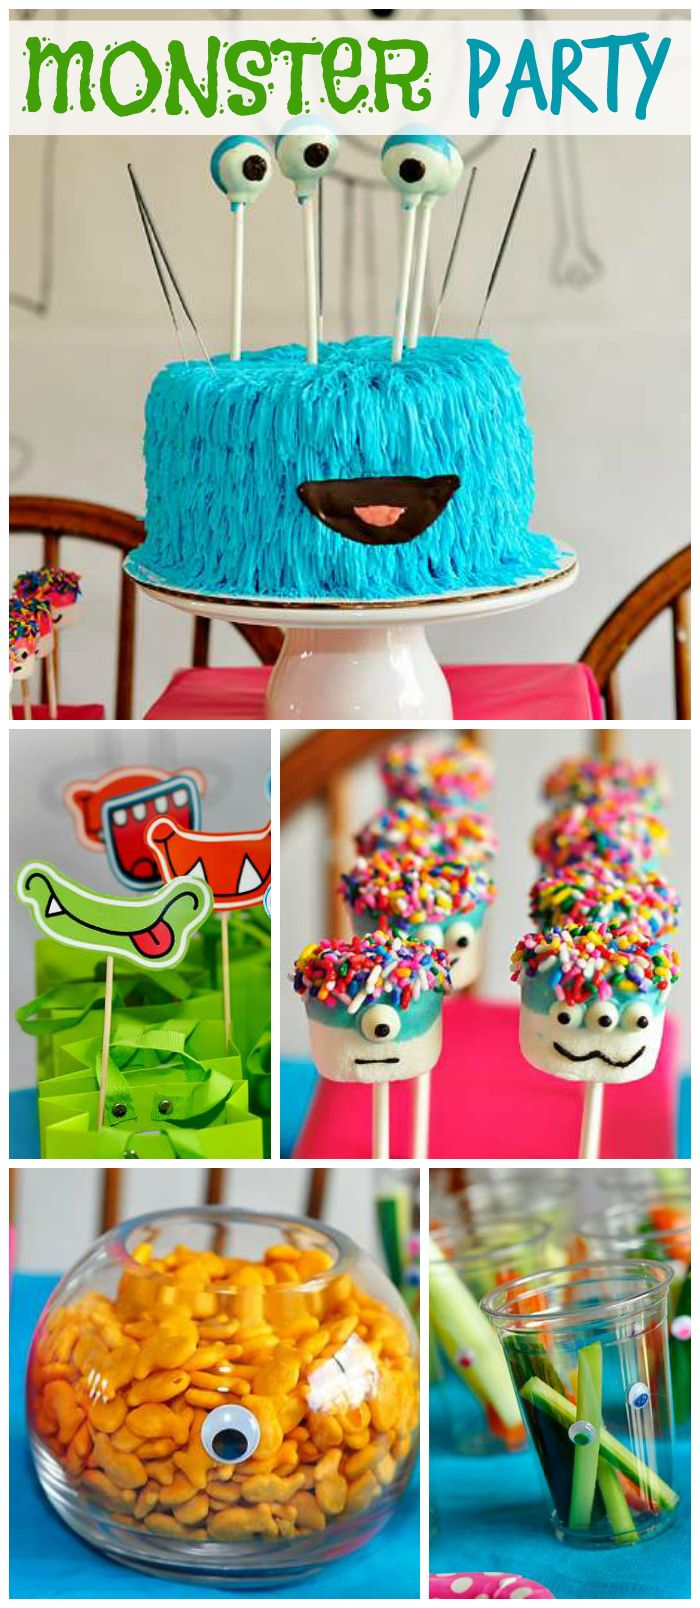 A monster themed girl birthday party with a fun cake, marshmallow pops and hand drawn backdrop! See more party planning ideas at CatchMyParty.com!